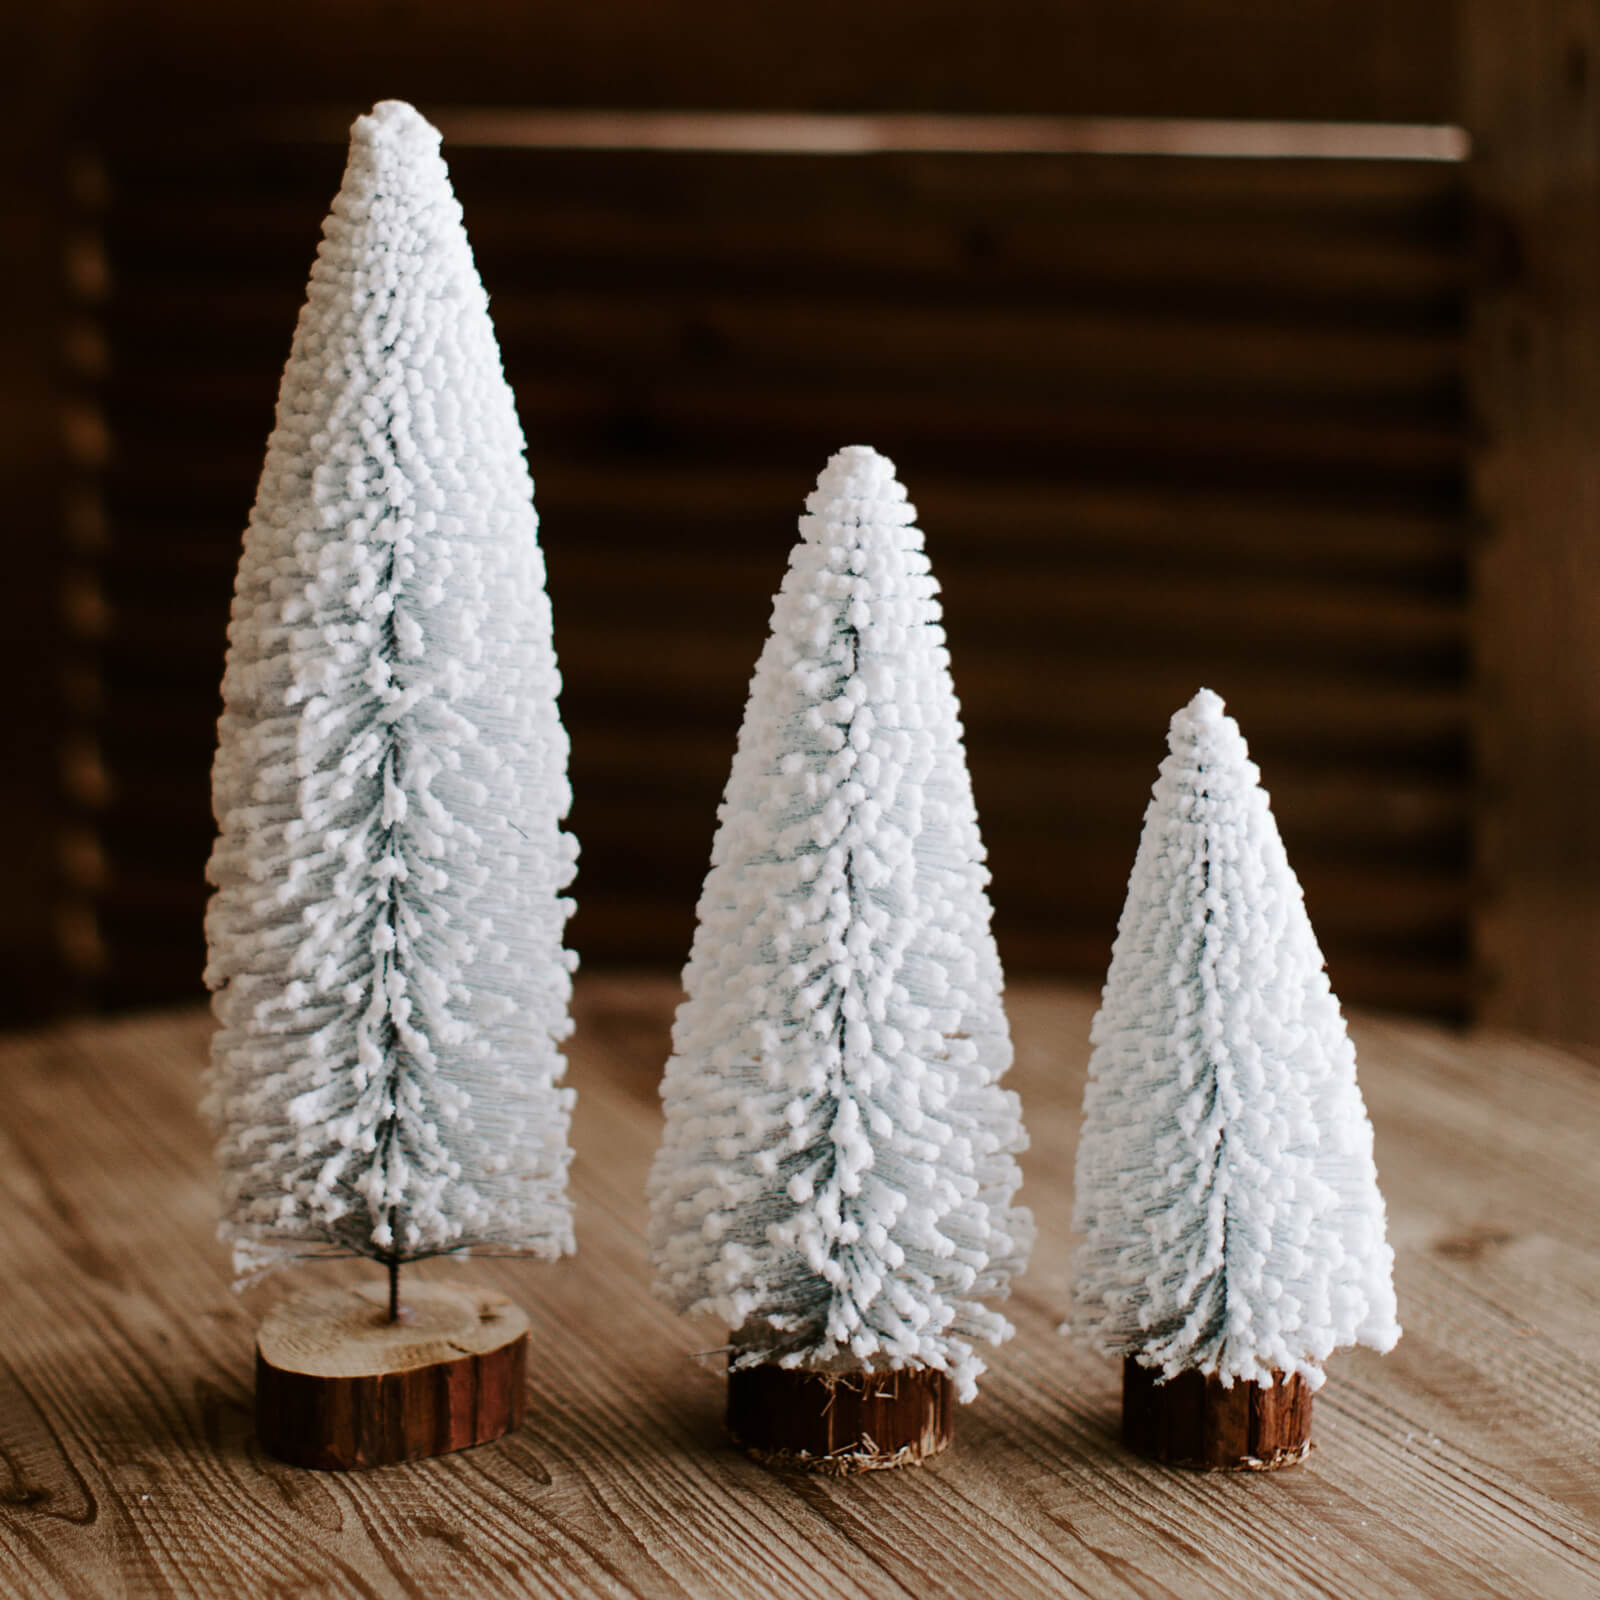 White flocked bottle brush trees with wooden base in 3 different sizes